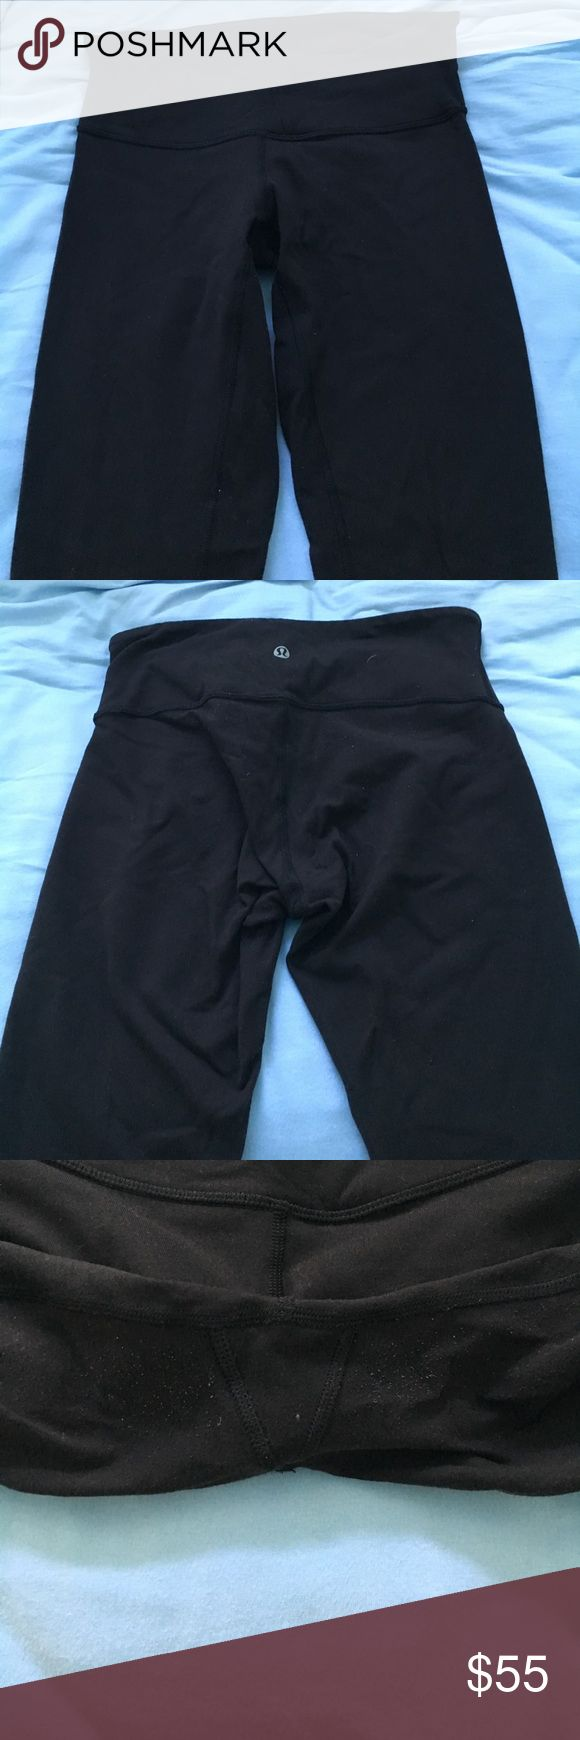 Lululemon Wunder Under Leggings Lululemon wunder under leggings!! About a year old but in very good condition, only slight pilling in crotch area. Selling because they don't fit me anymore. I have two of them for sale! lululemon athletica Pants Leggings